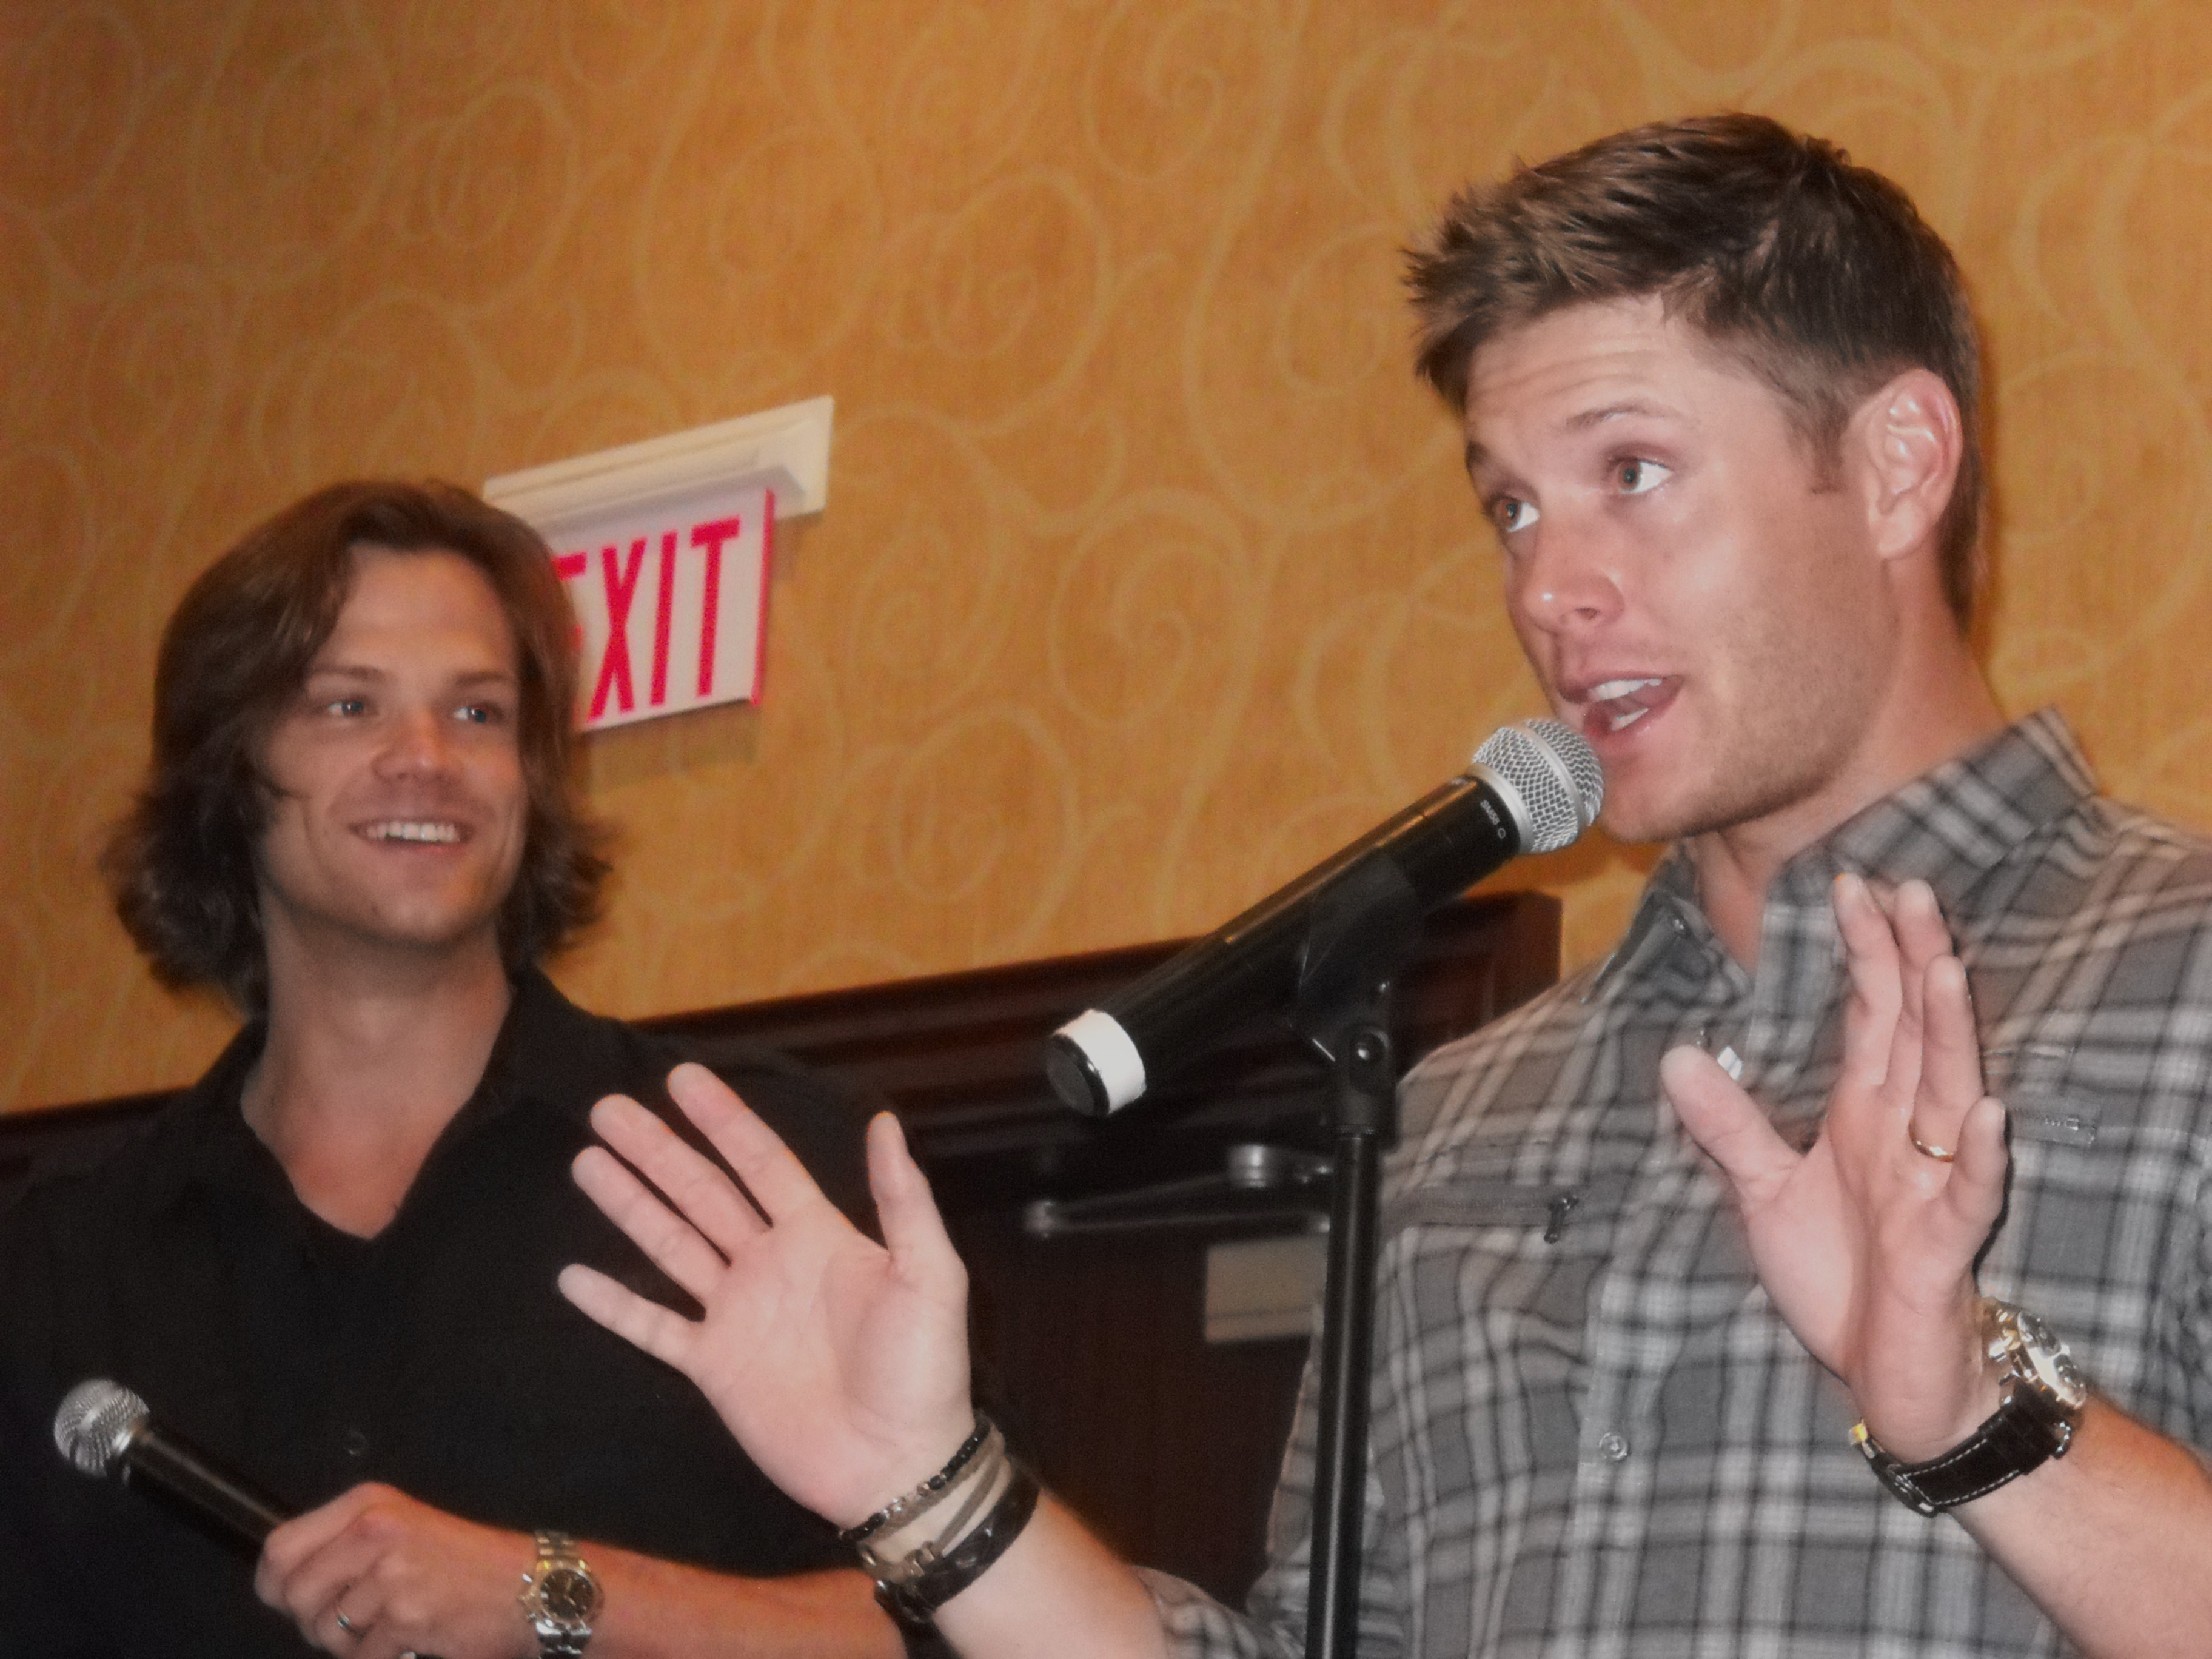 jensen and jared relationship in real life